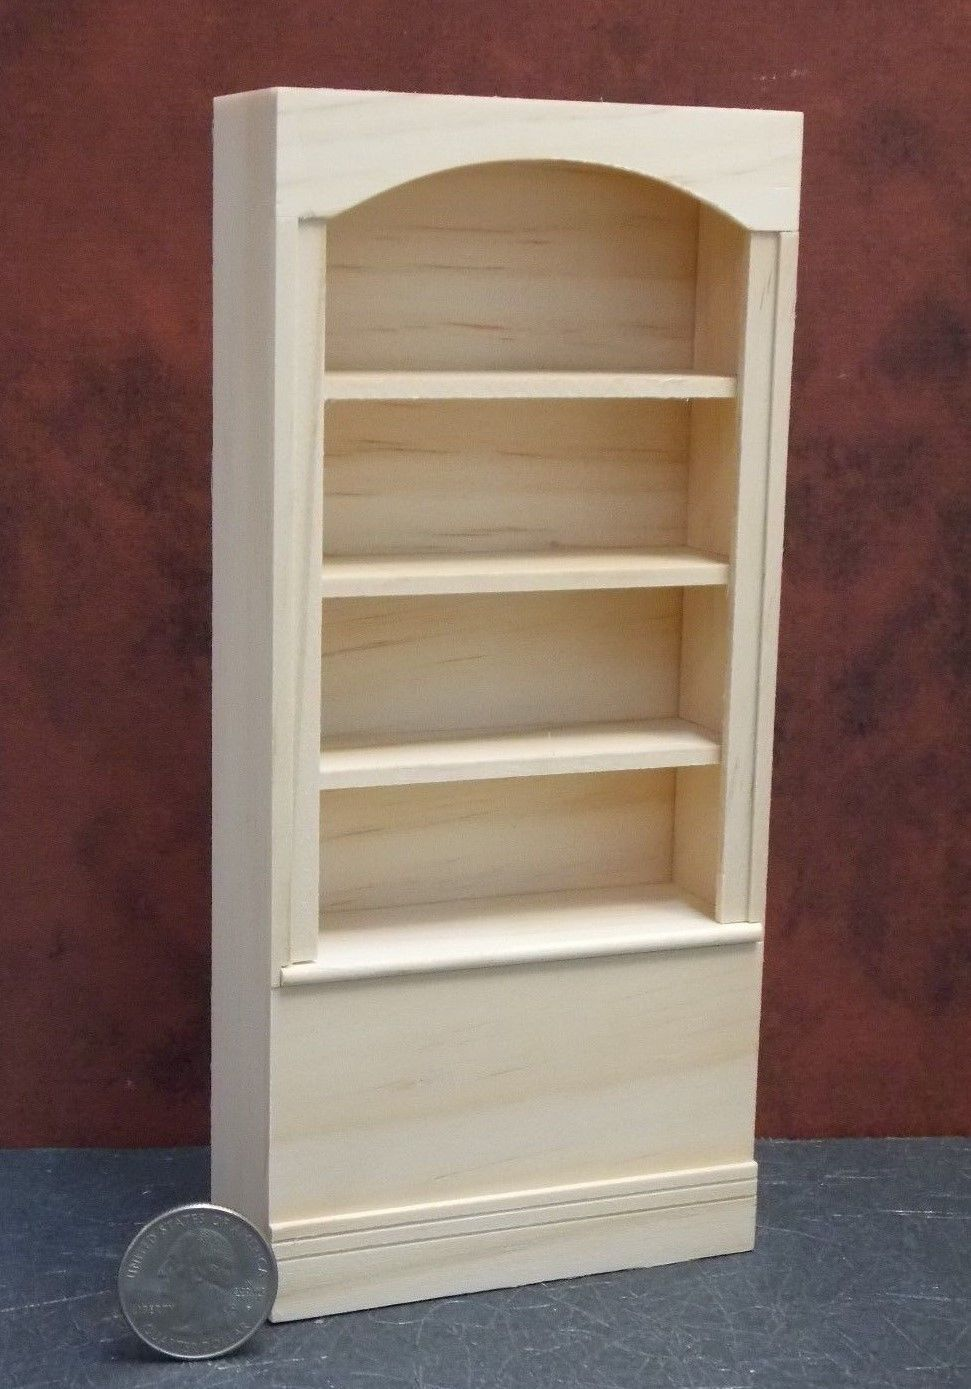 unfinished dollhouse furniture. Dollhouse Miniature Unfinished Bookcase Houseworks A 1:12 One Inch Scale D74 Furniture P